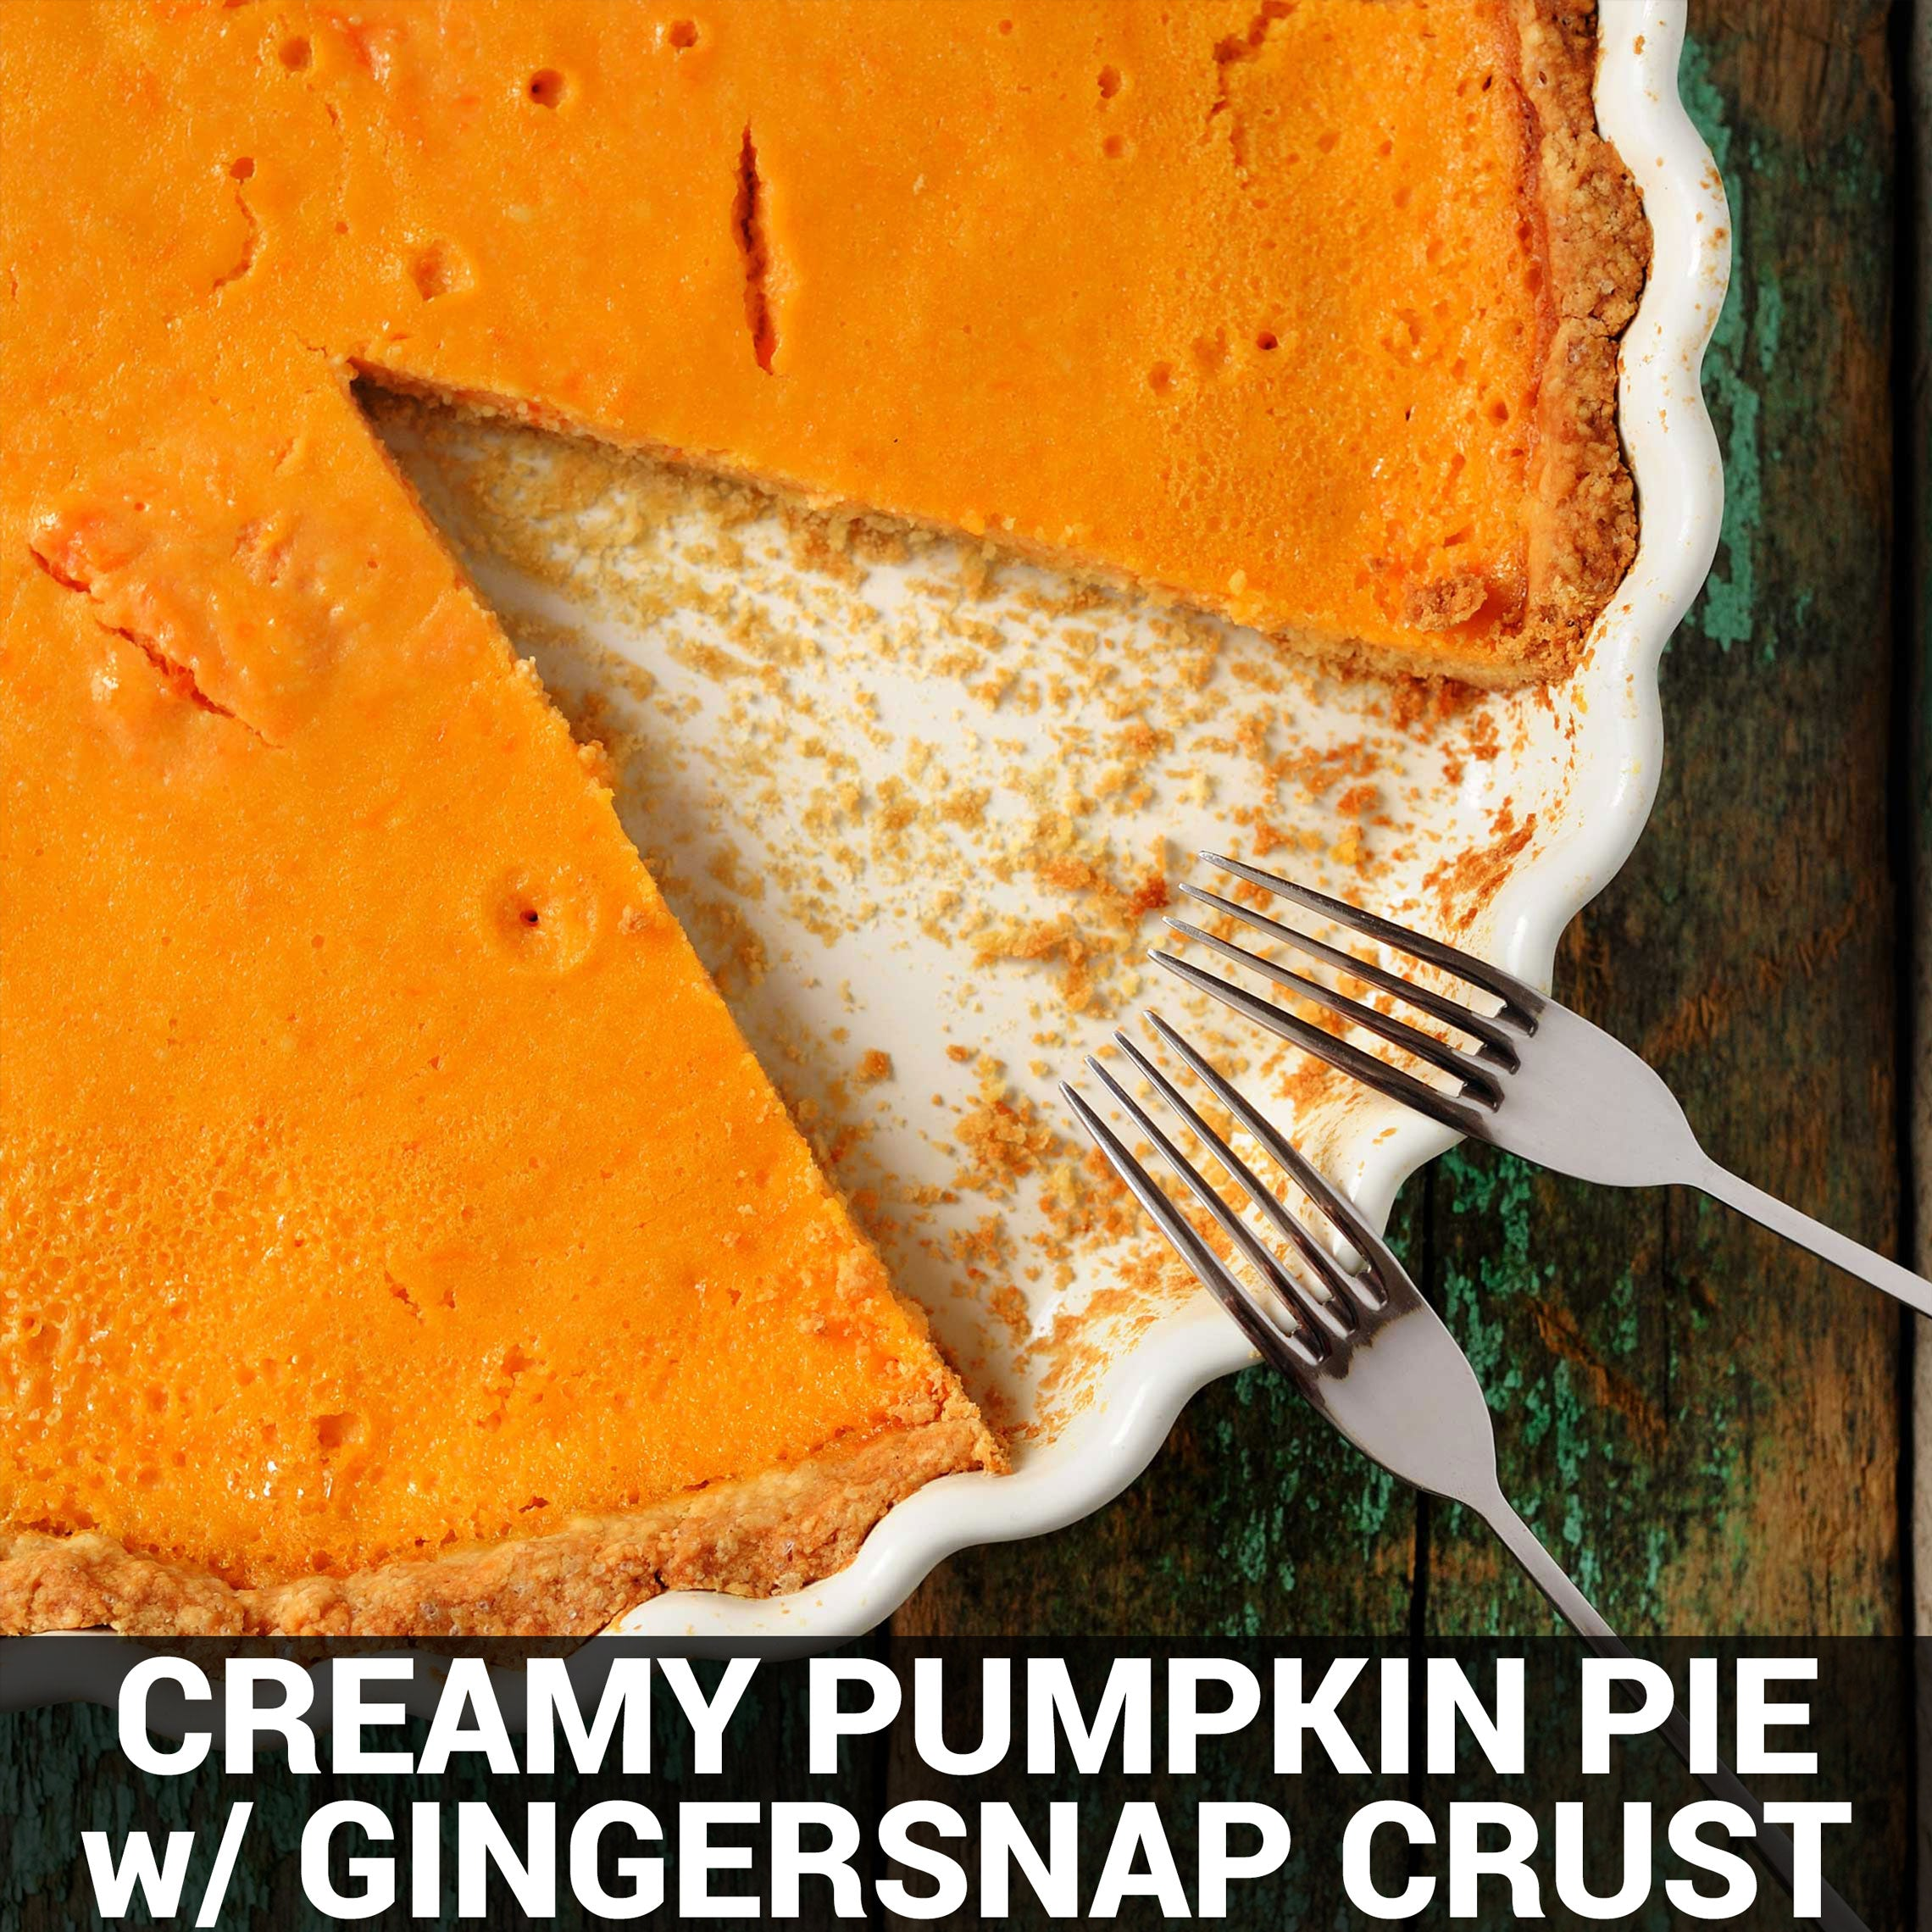 Chuck's Creamy Pumpkin Pie with Gingersnap Crust Recipe - Foods Alive